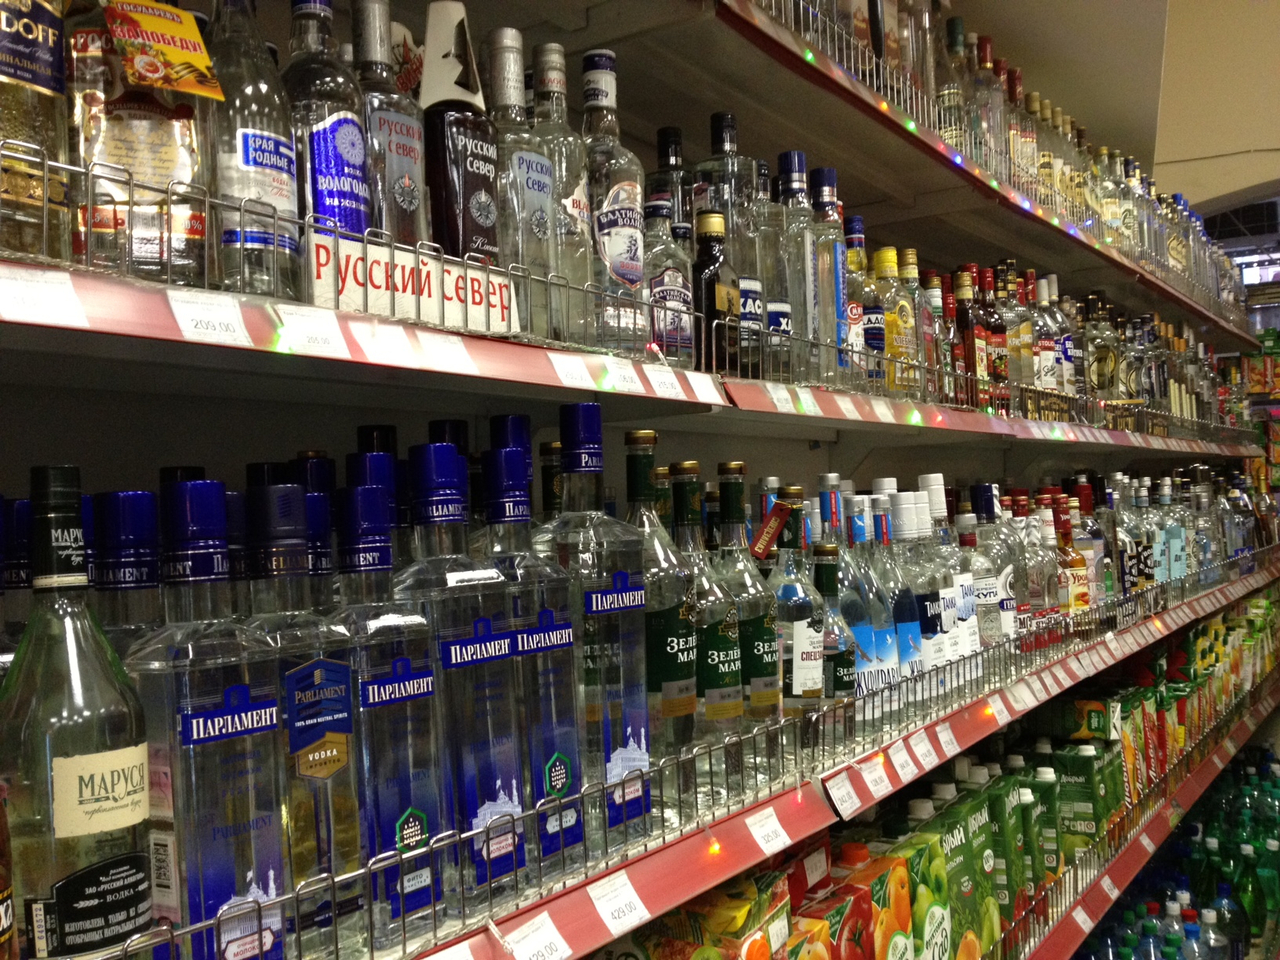 The selection of vodka in a 24h convenience store.